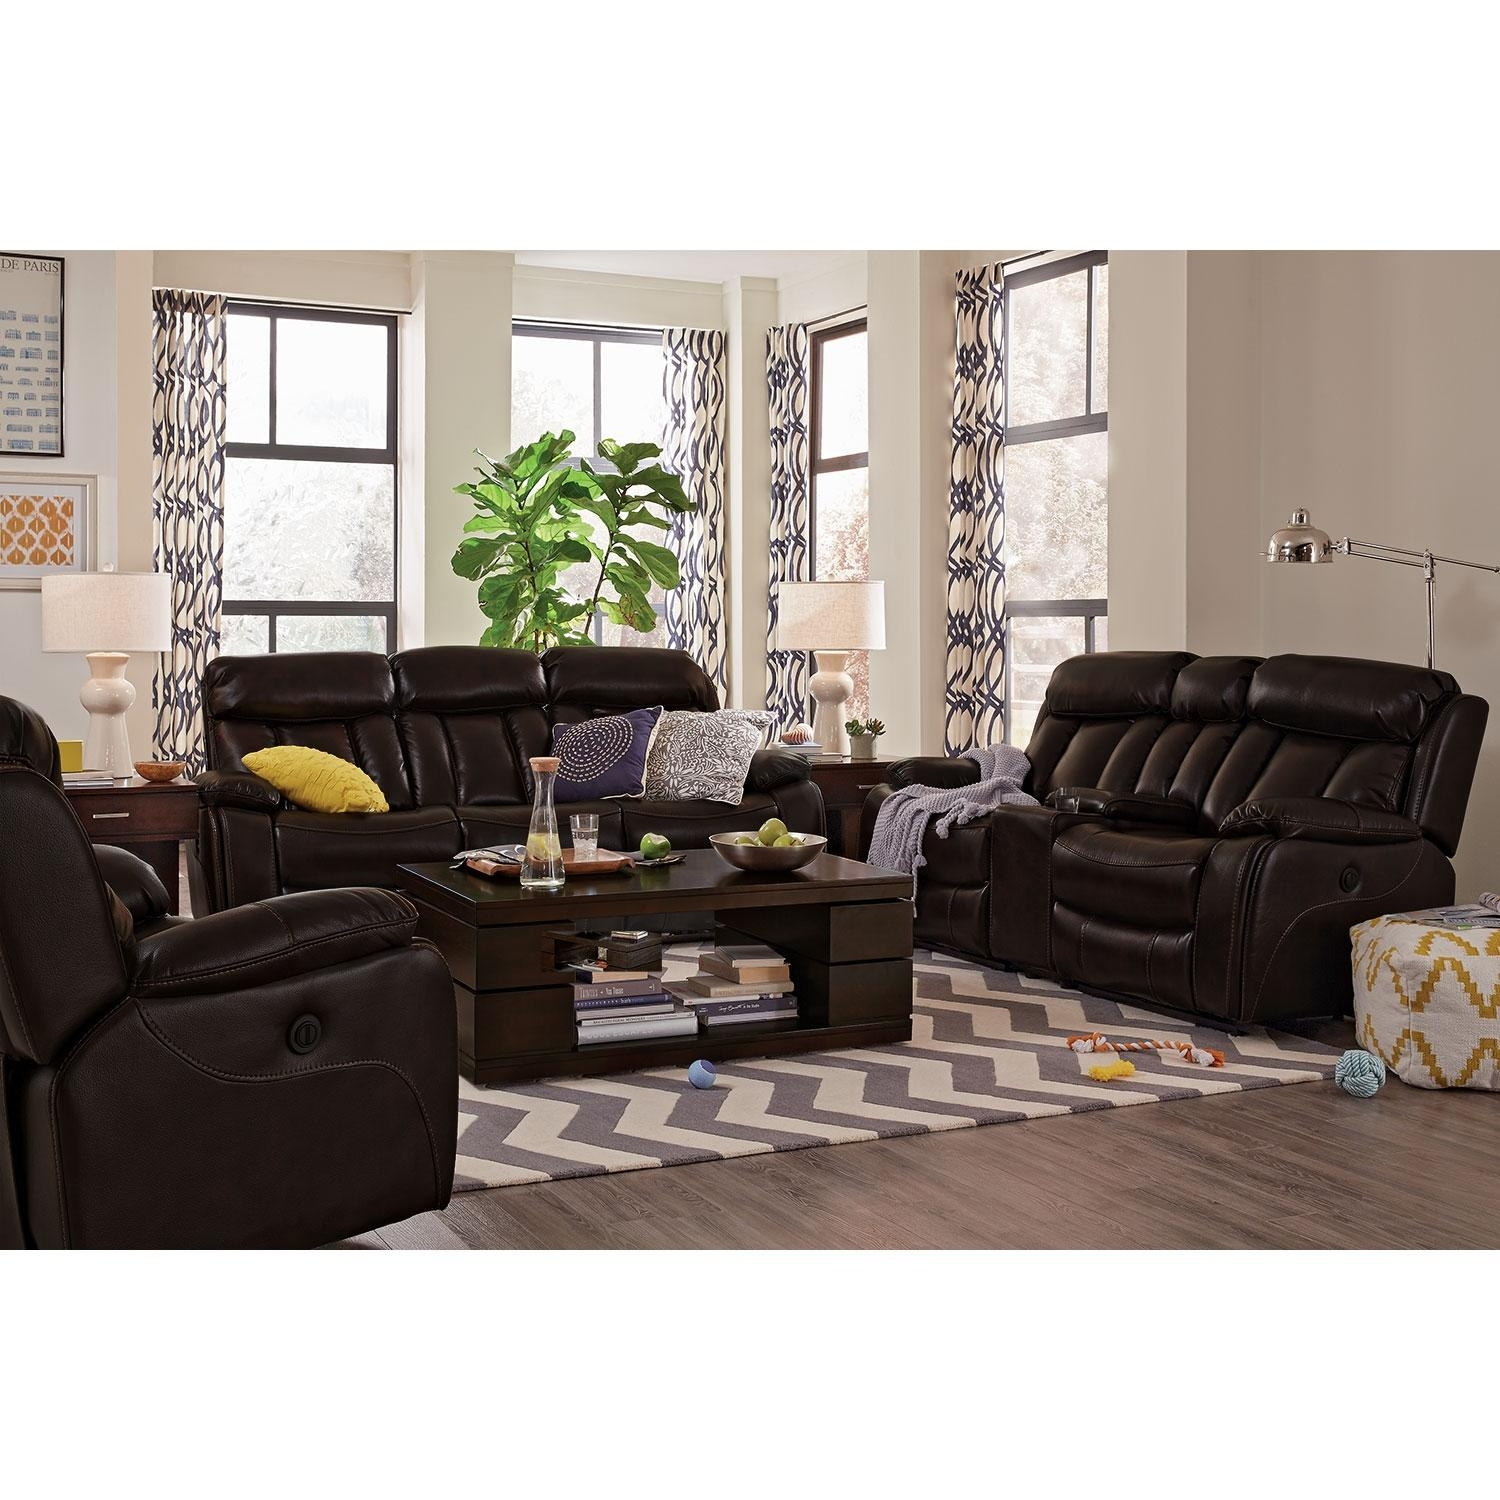 Featured Image of Plummers Sofas